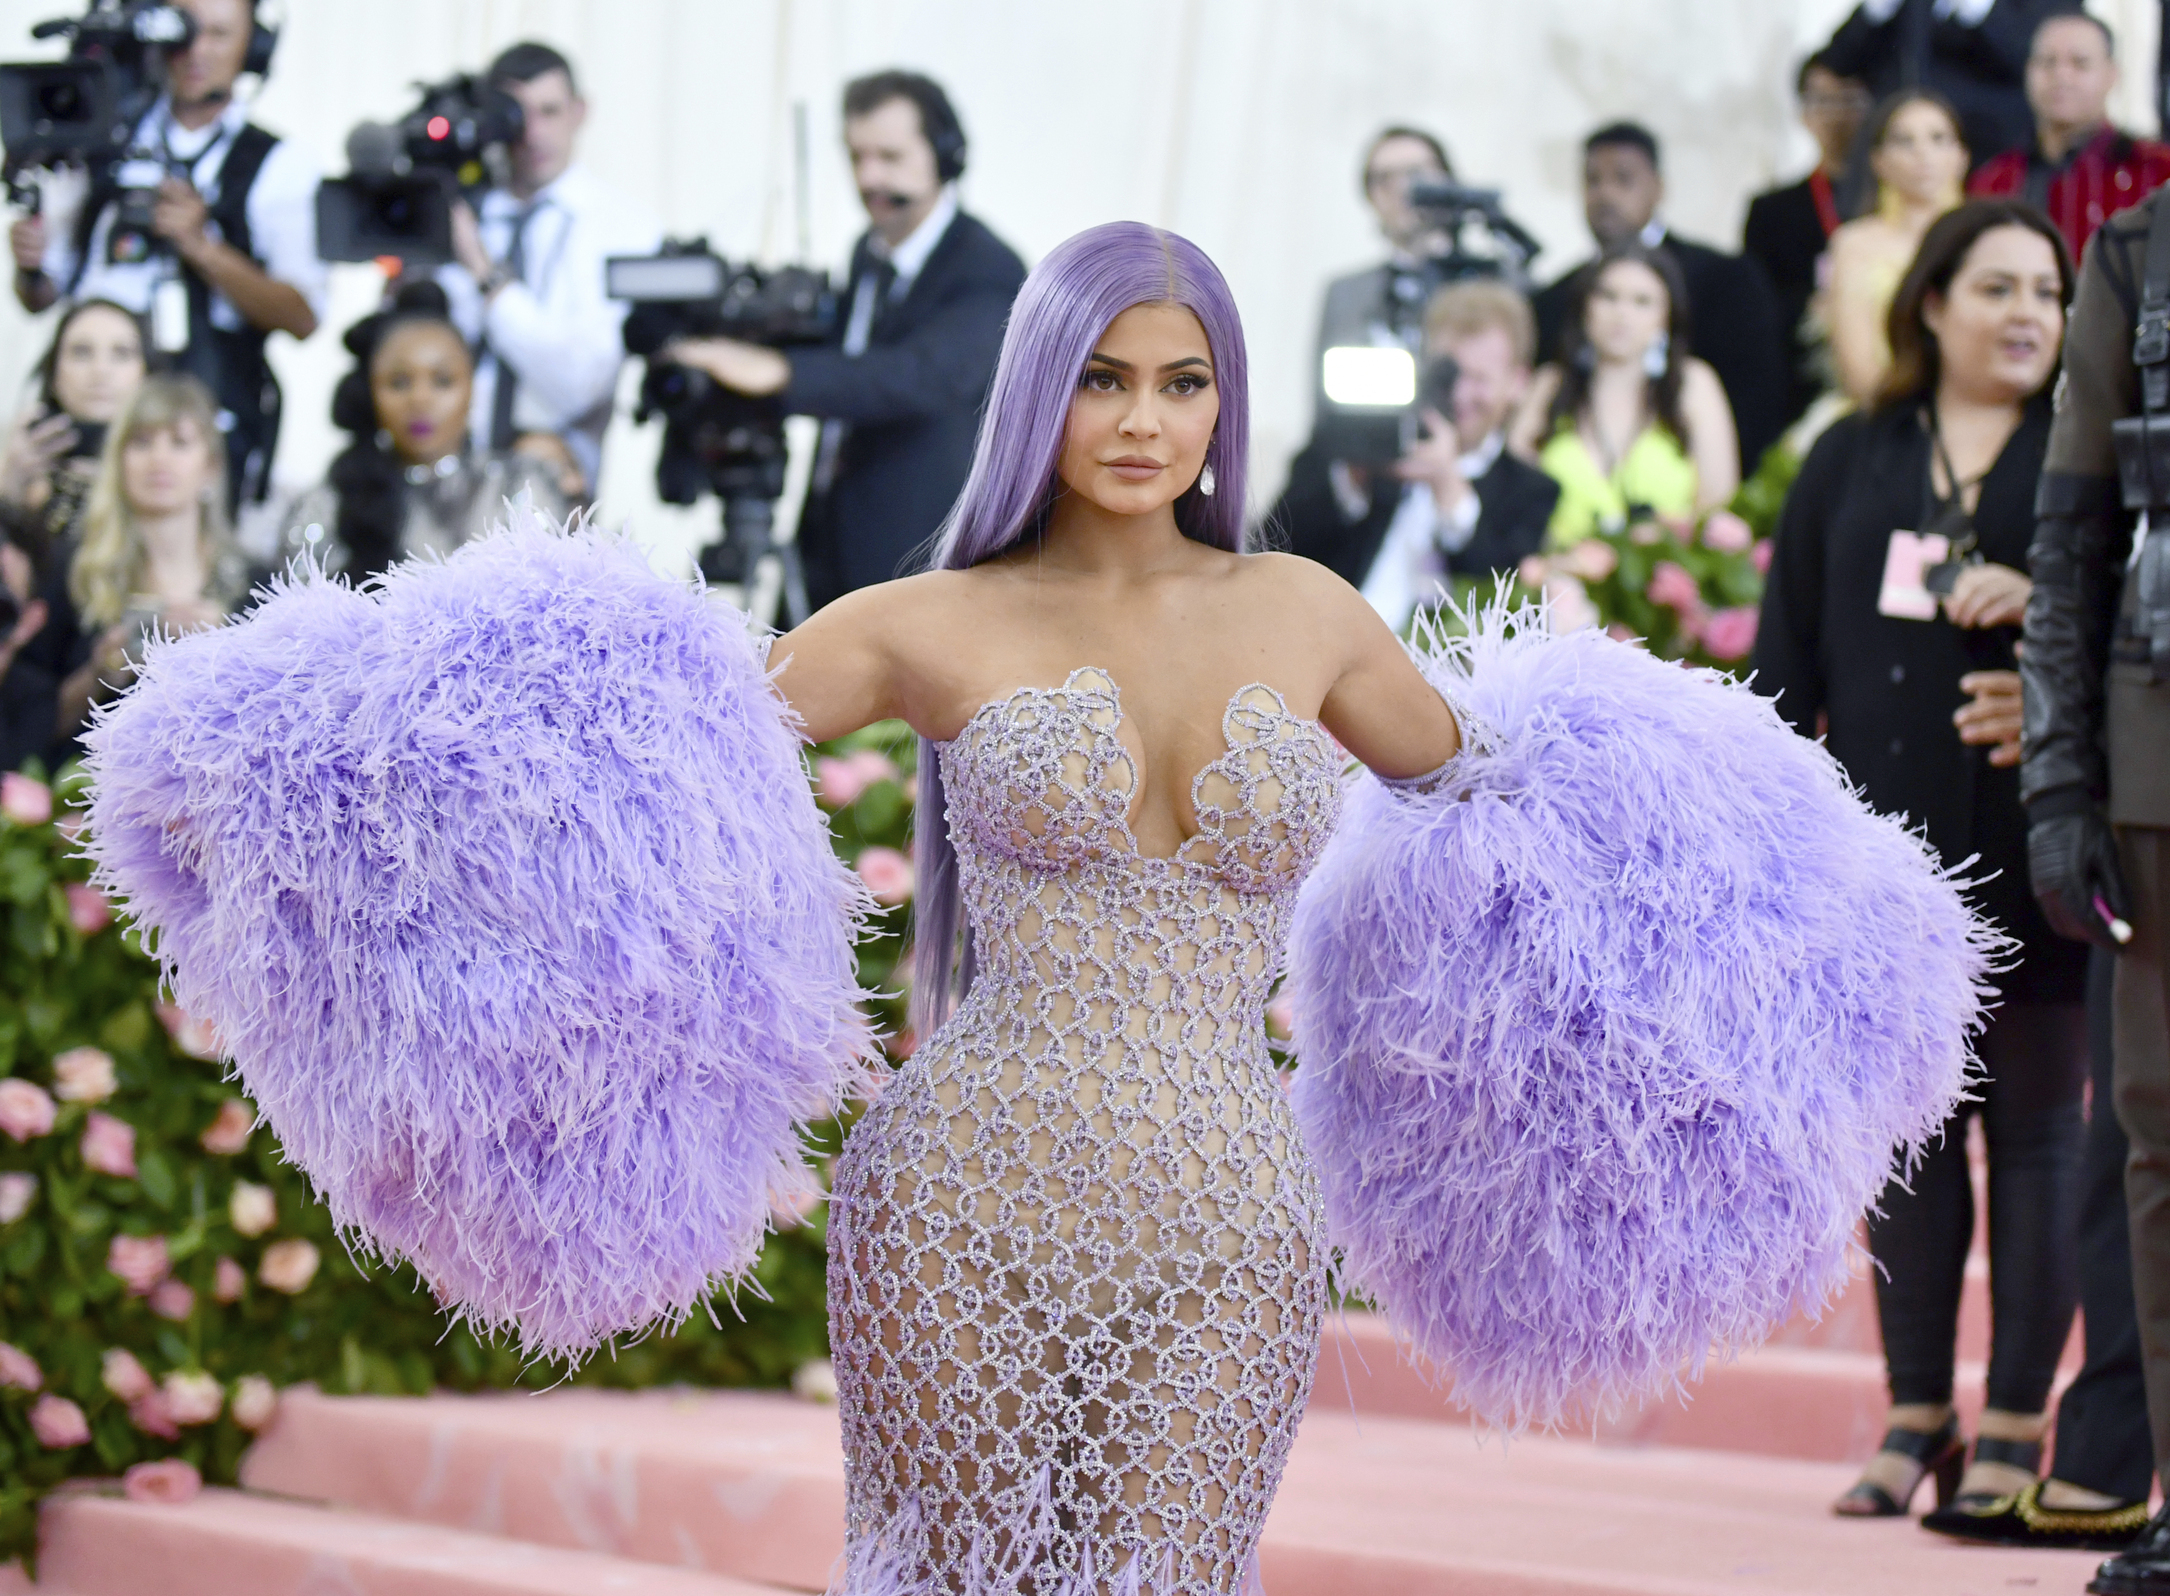 Kylie Jenner attends The Metropolitan Museum of Art's Costume Institute benefit gala in May.